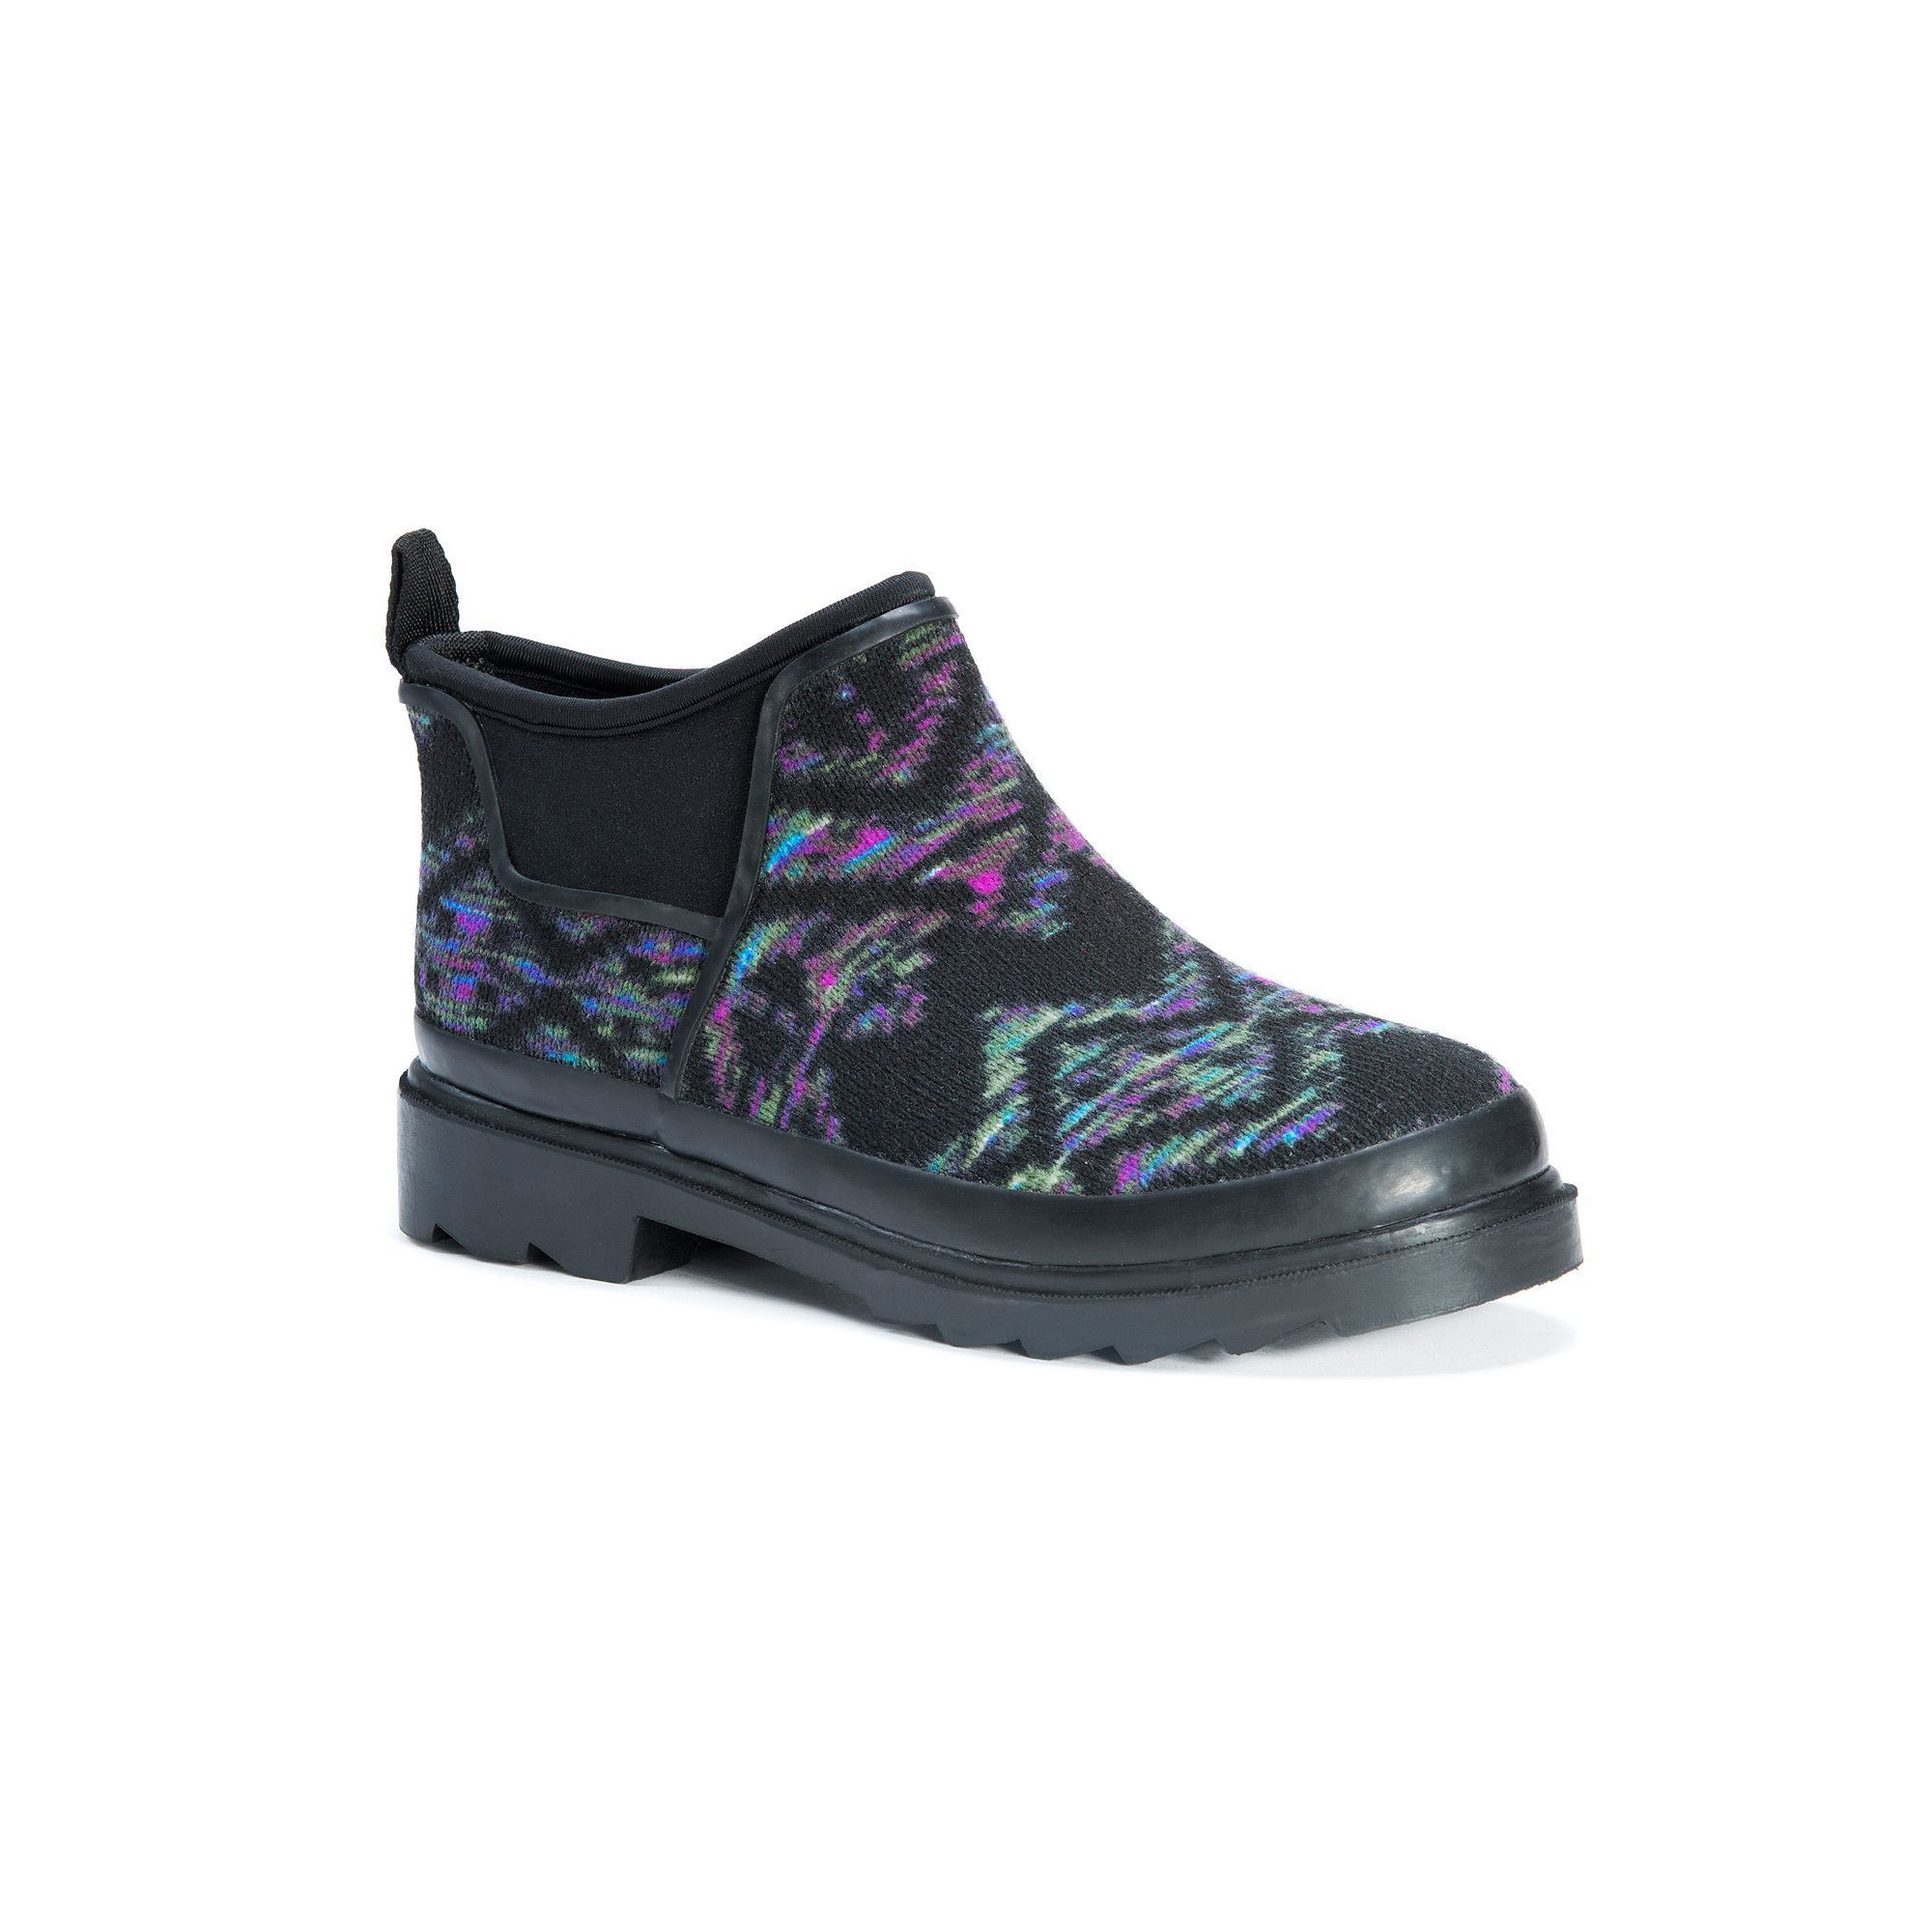 MUK LUKS Libby Women's ... Water-Resistant Rain Shoes